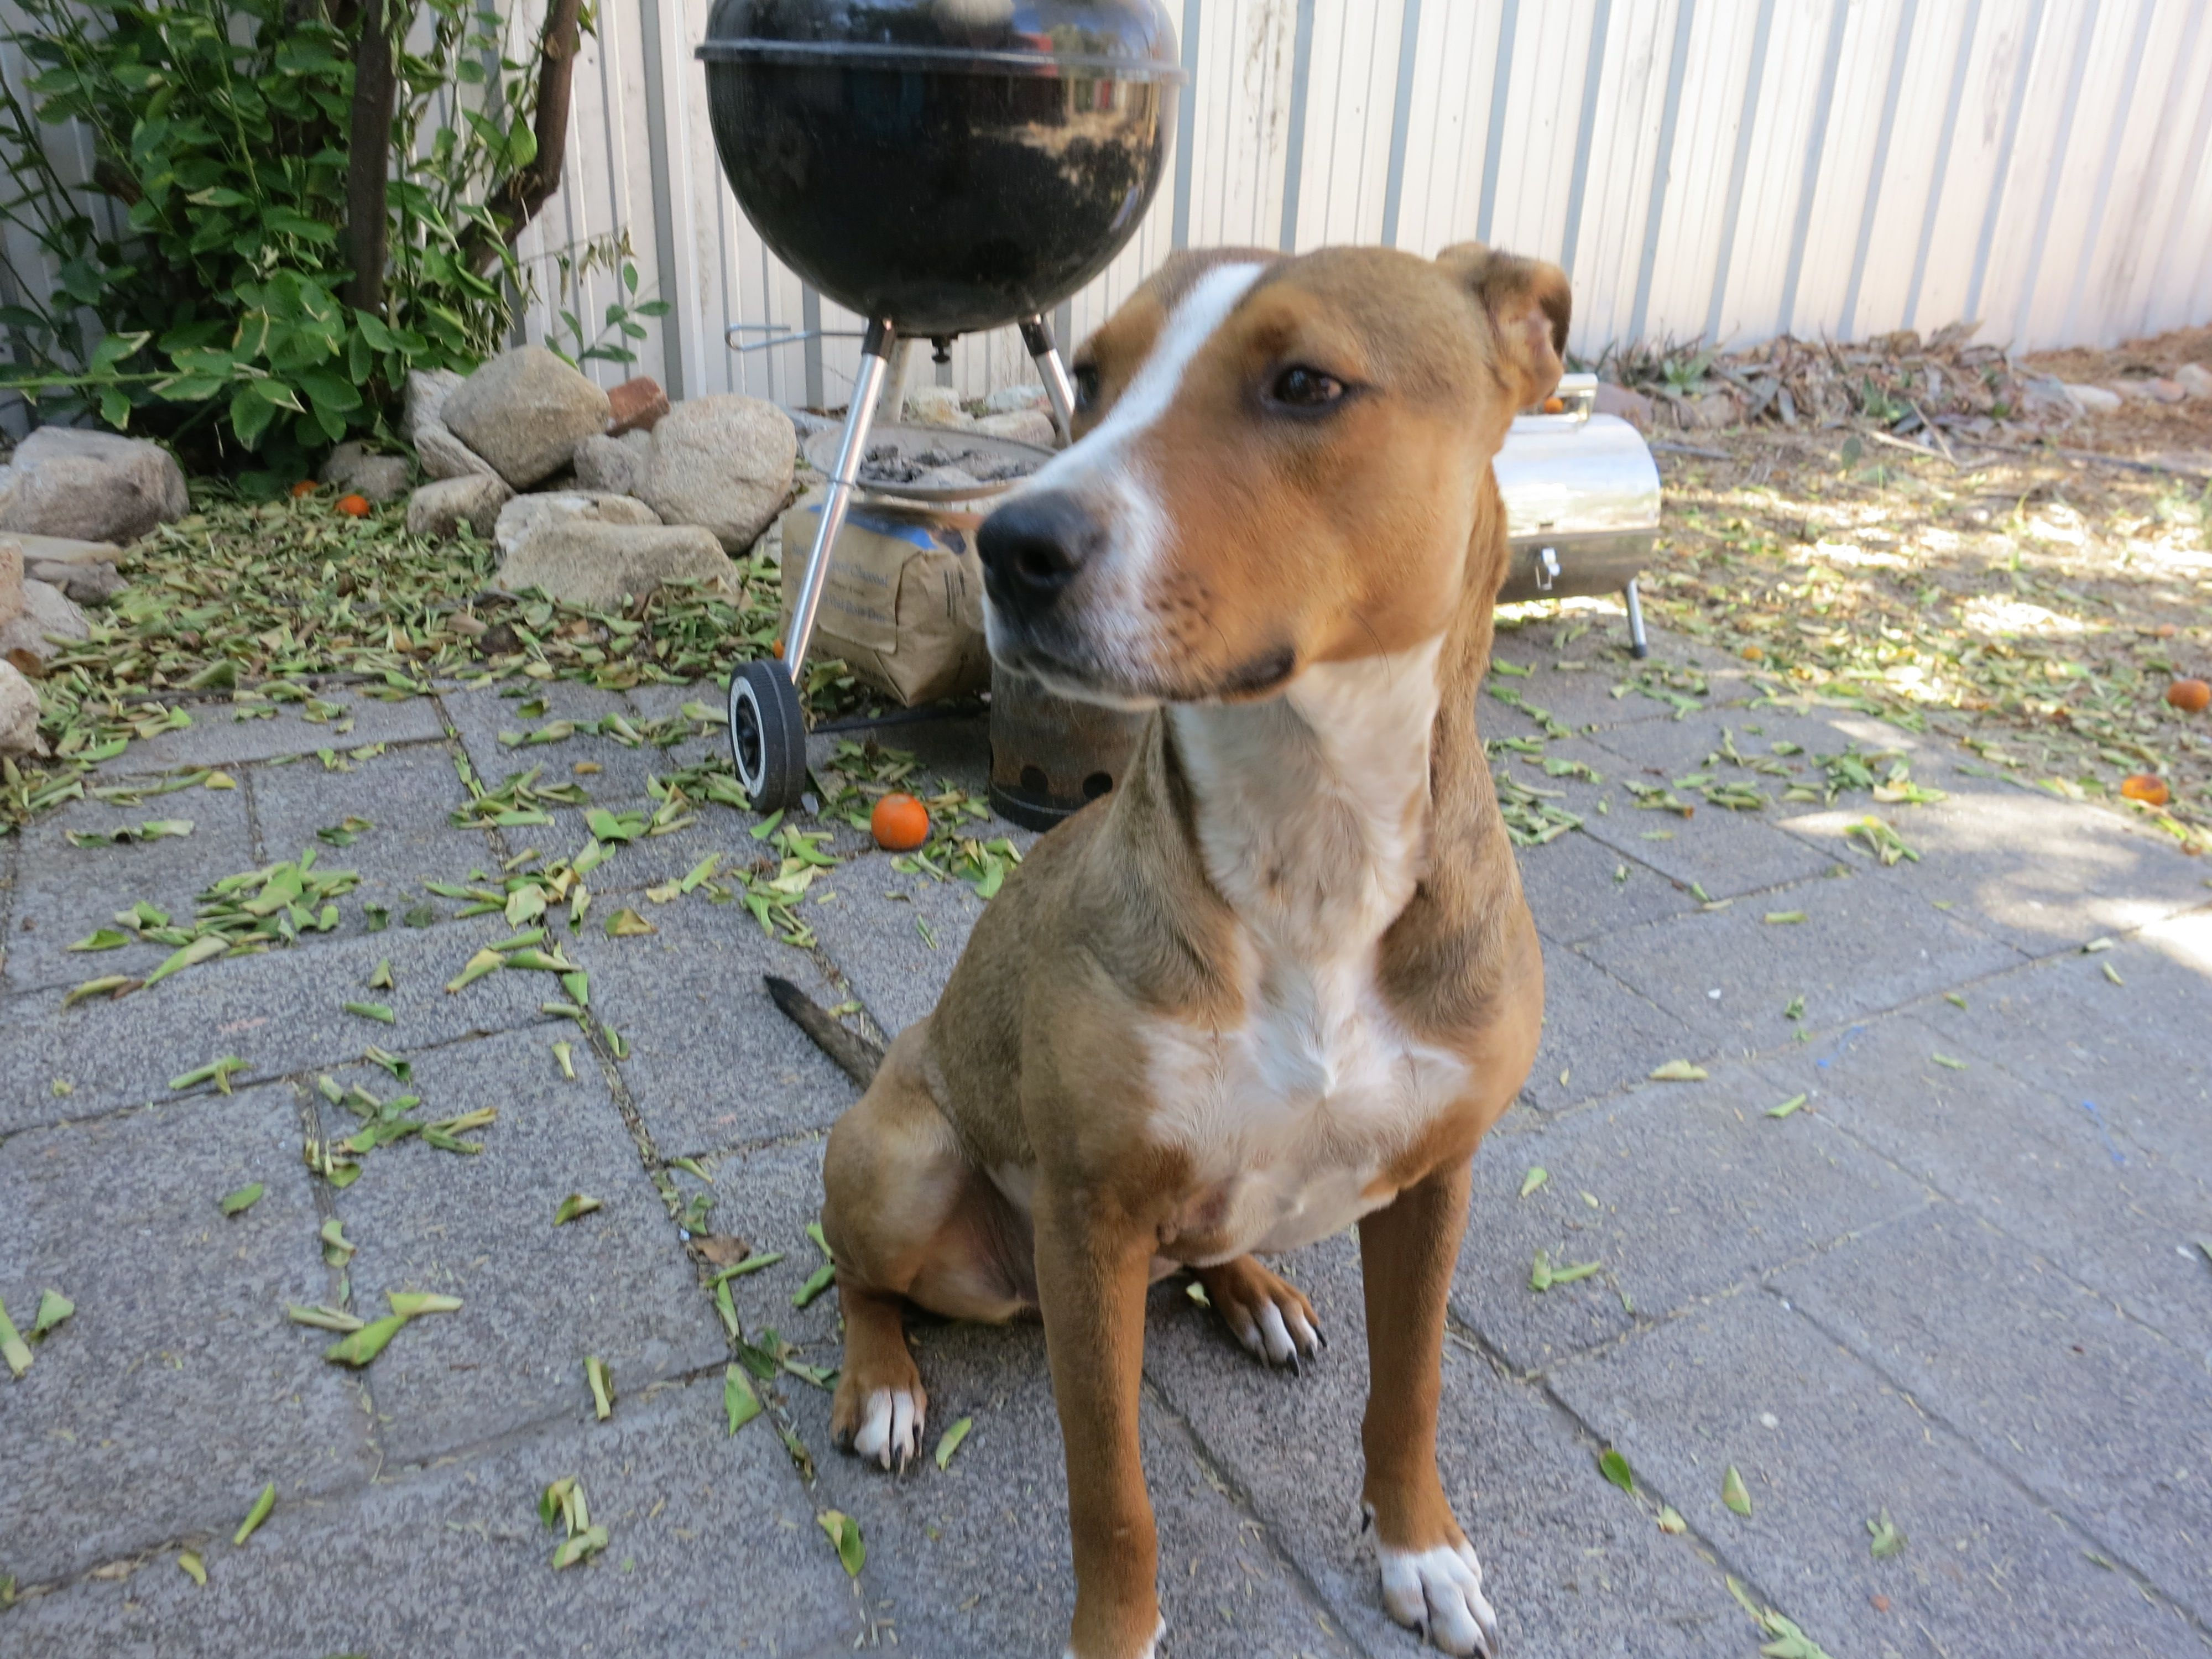 pit bull mix with terrier file american pitbull terrier mix 2013 08 20 14 56 jpg 4836